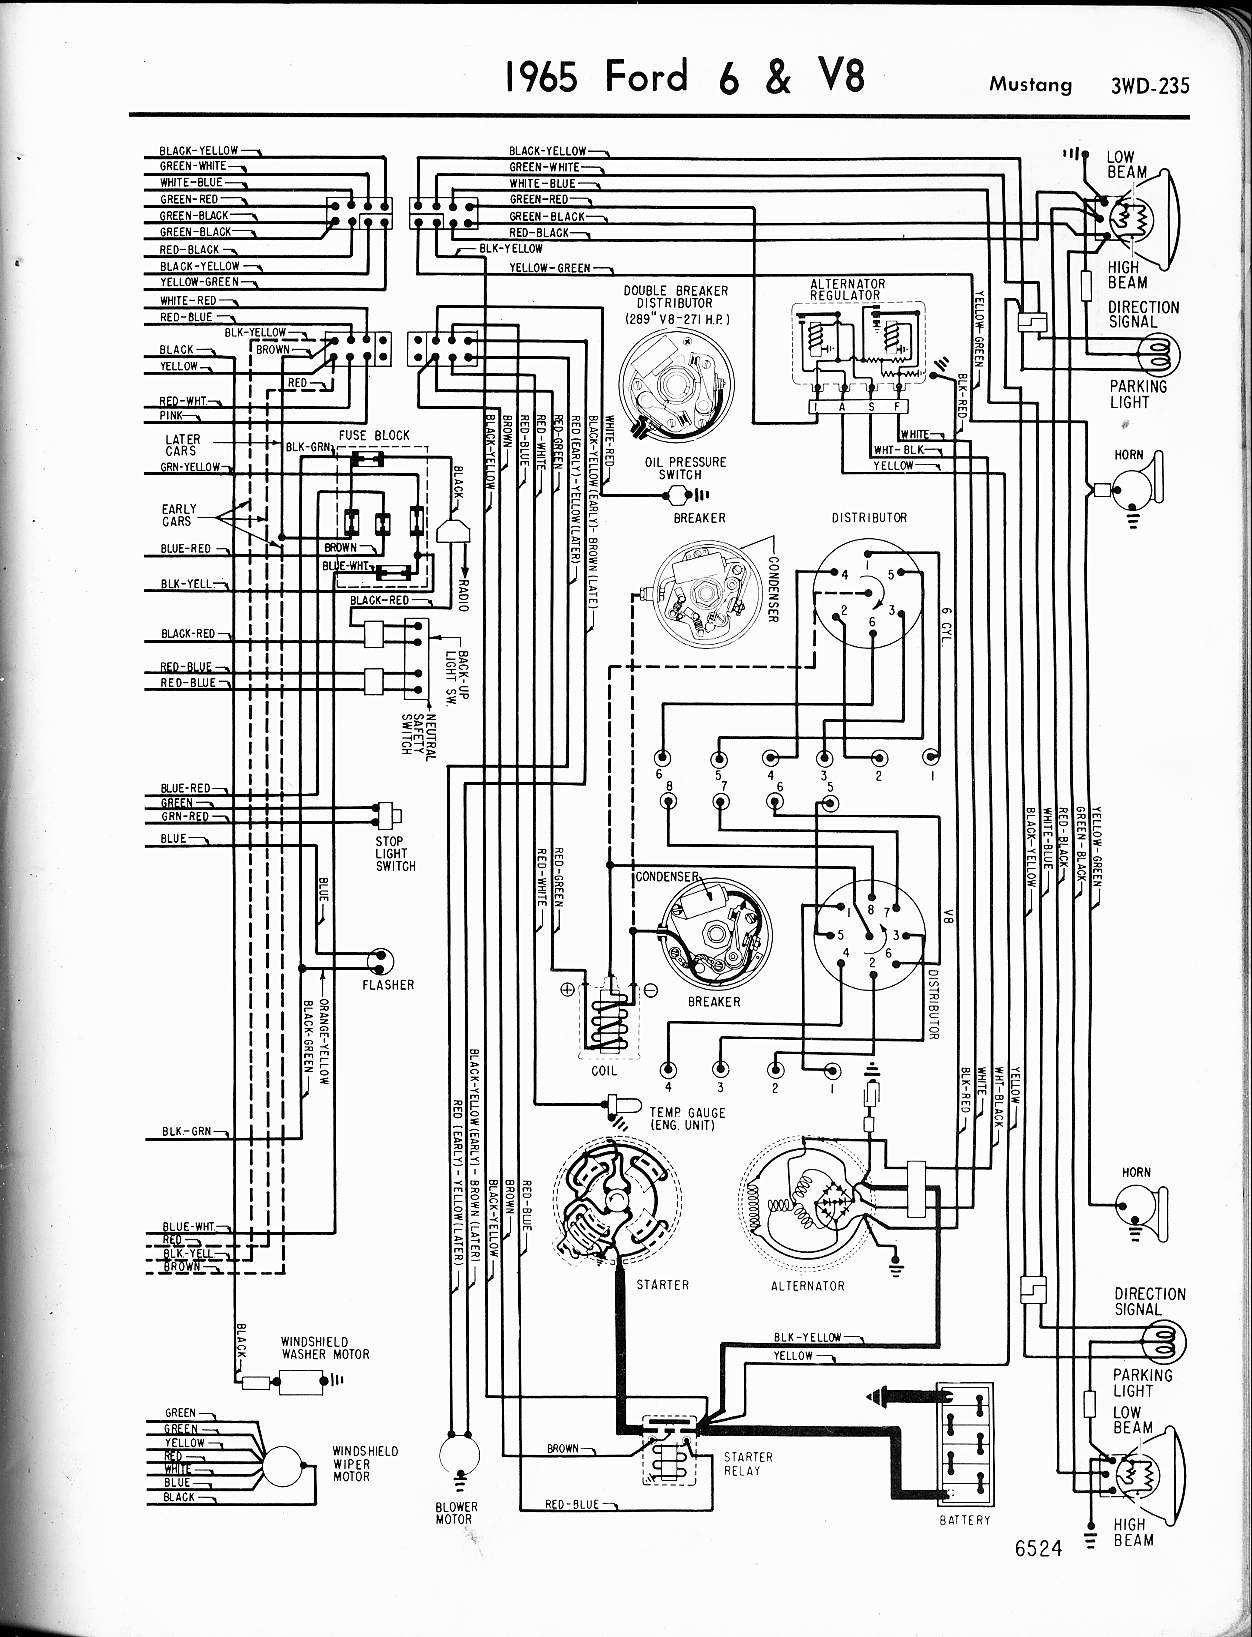 1965_mustang_wiring_2 69 mustang wiring diagram 1969 ford f100 wiring diagram \u2022 wiring 1965 mustang turn signal wiring diagram at crackthecode.co